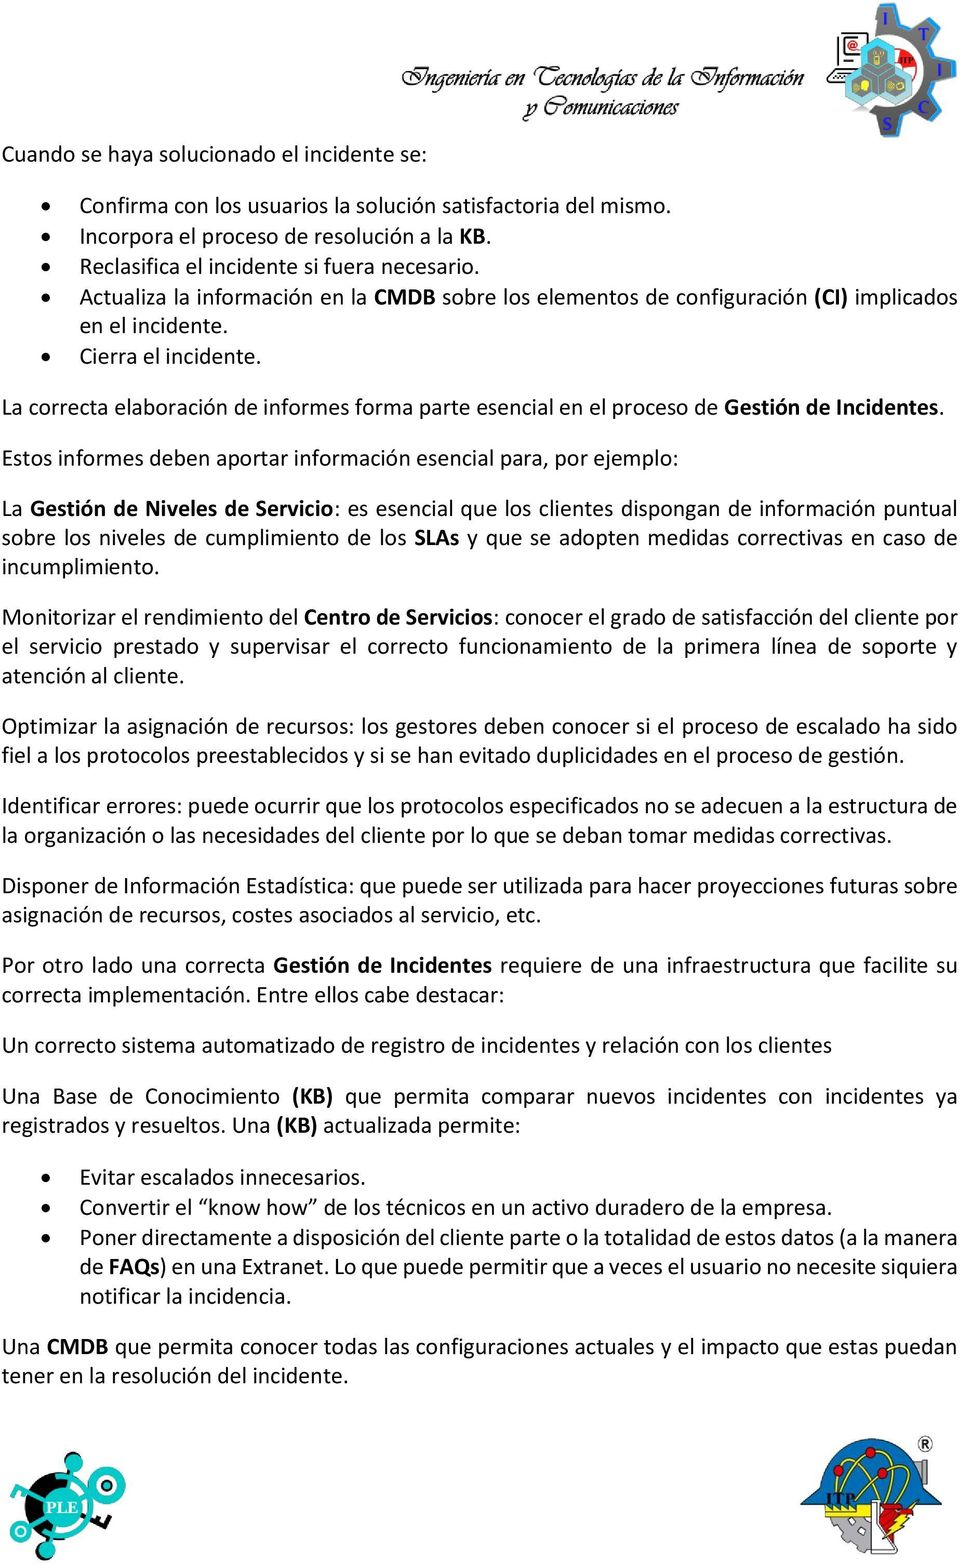 GESTIÓN DE INCIDENTES - PDF